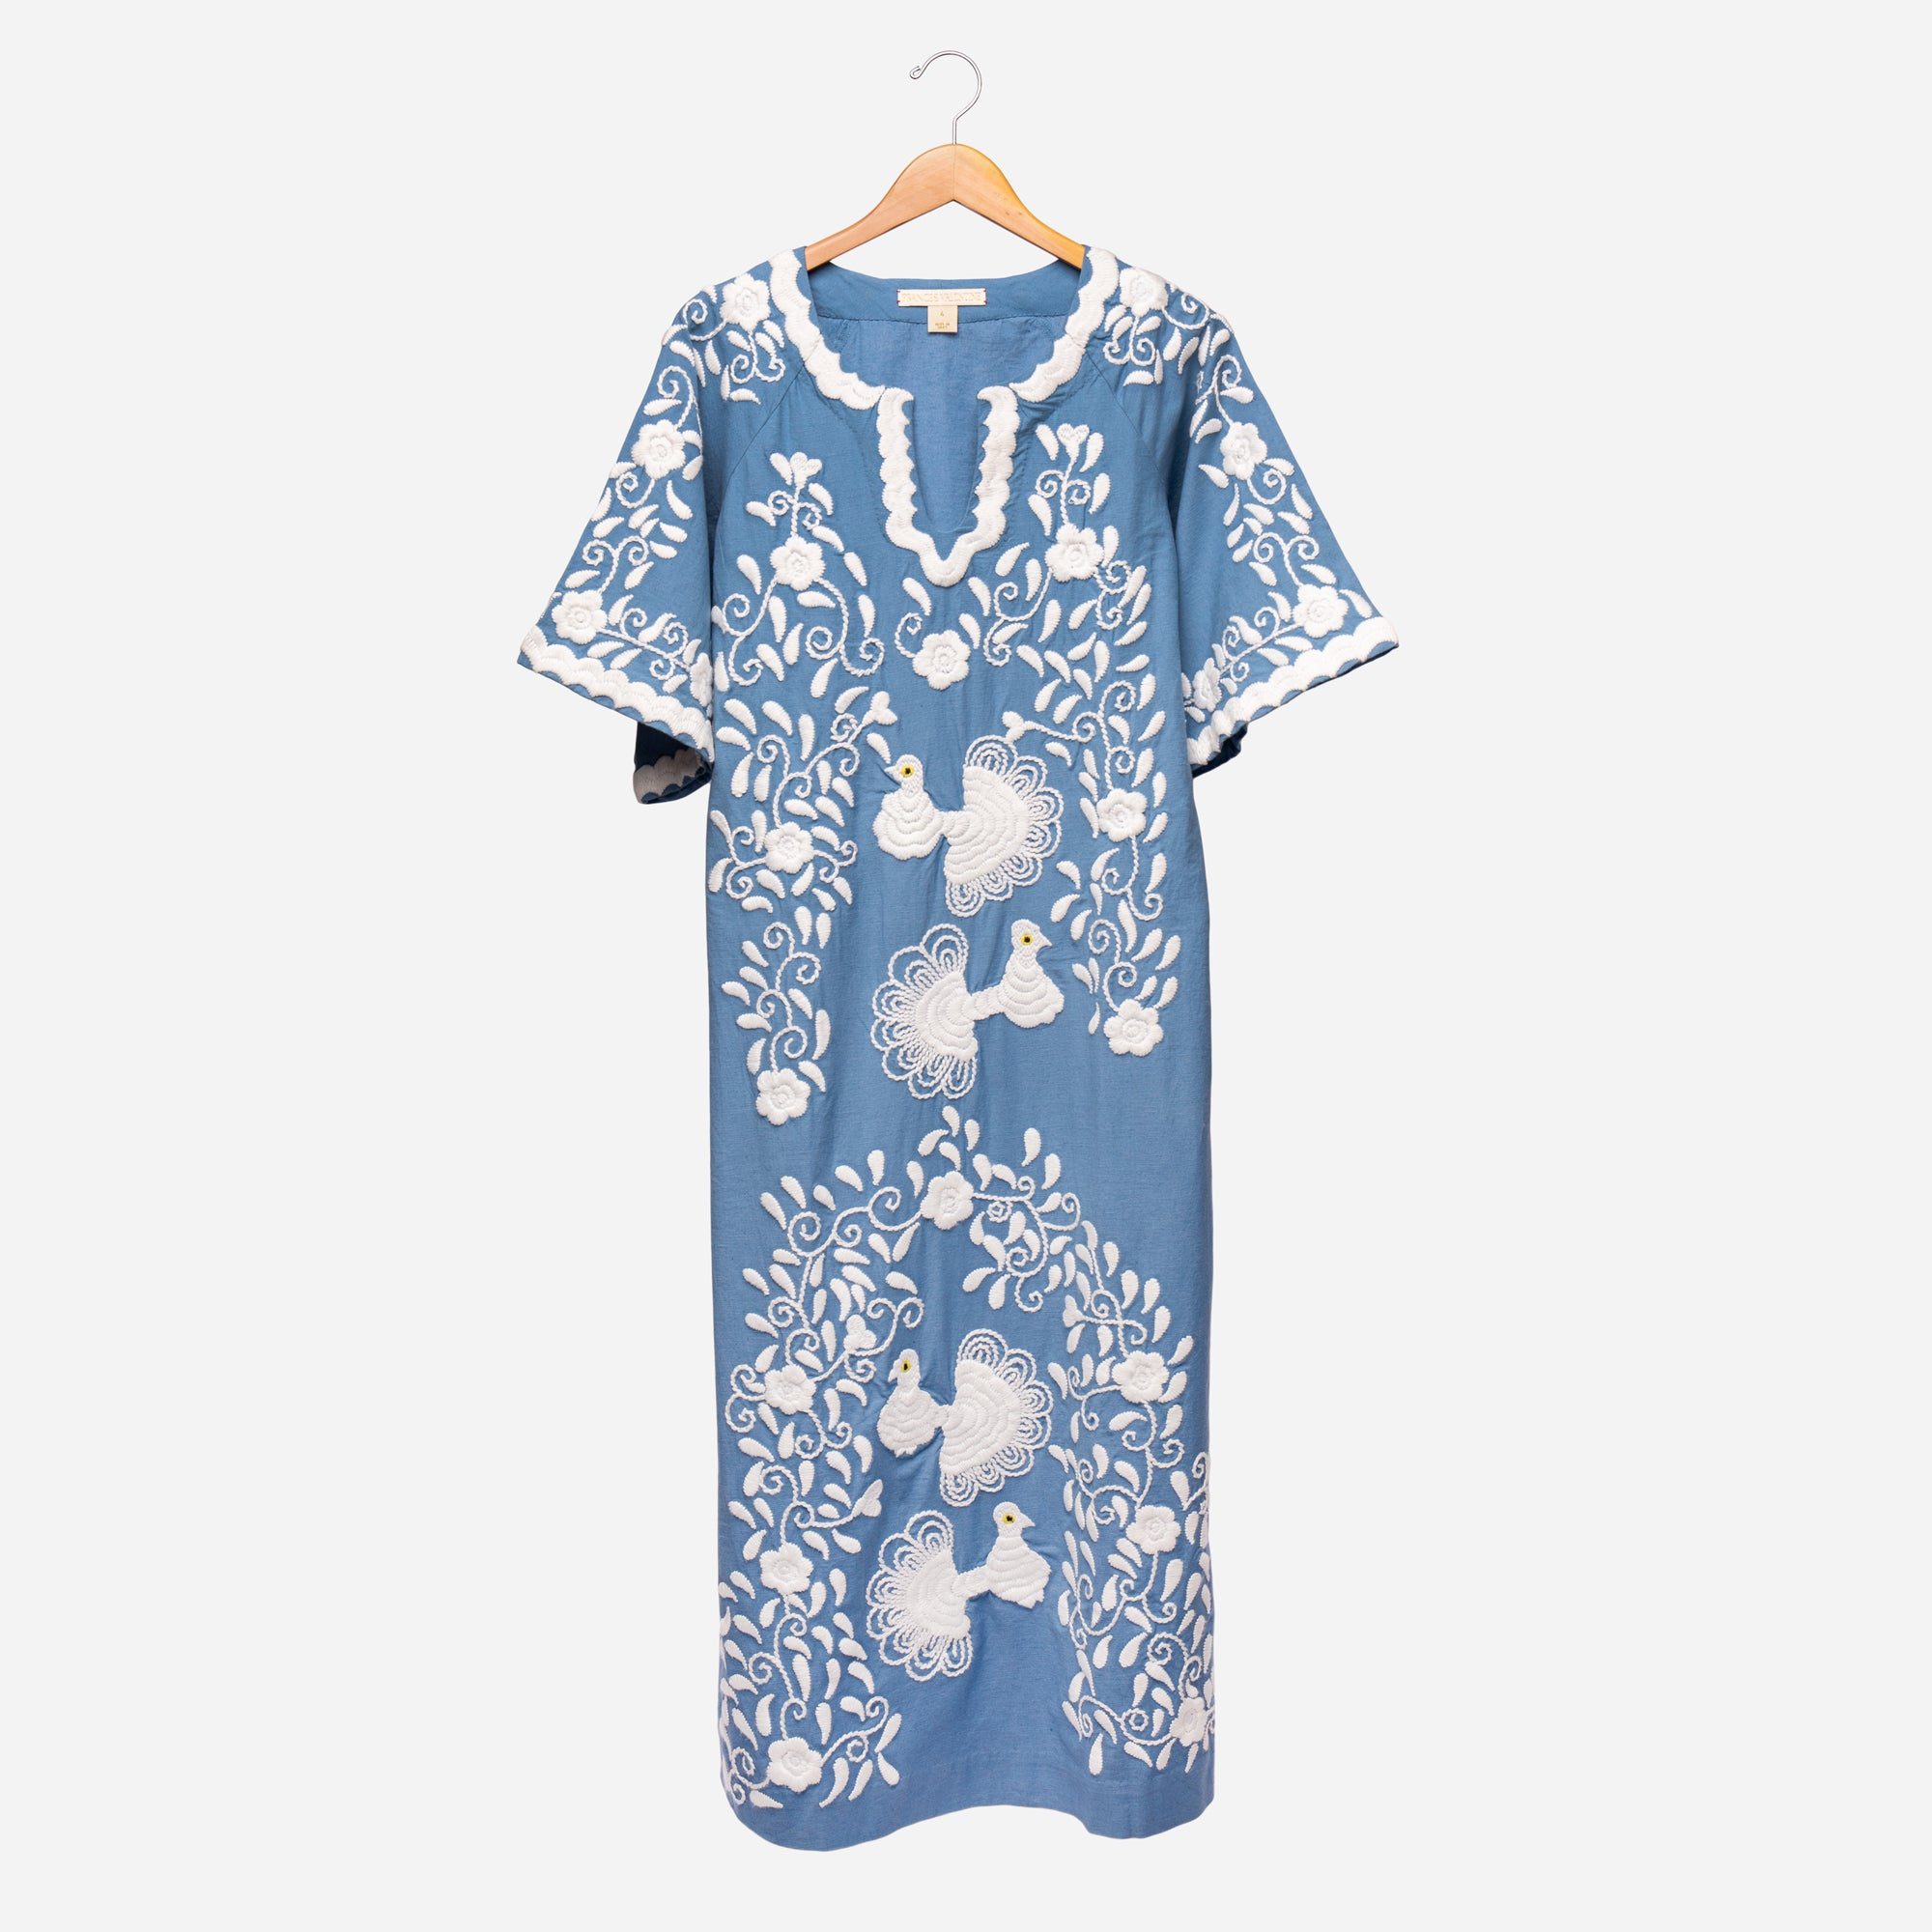 Katy's Peacock Caftan Blue